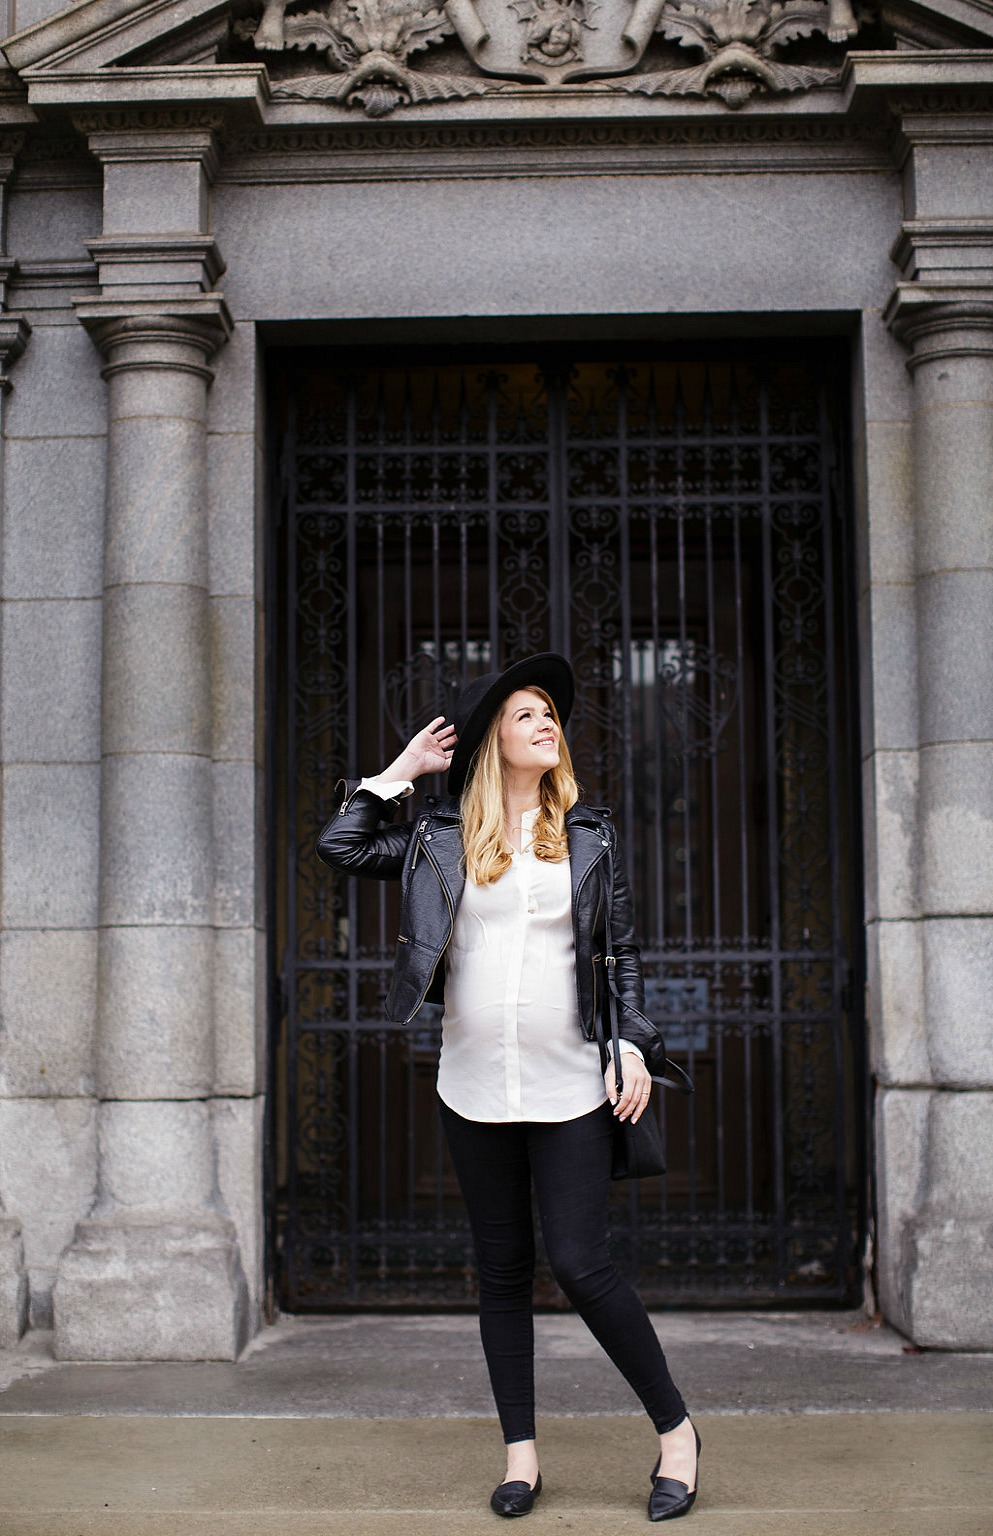 MATERNITY-STYLE-FASHION-PREGNANCY-ROSECITYSTYLEGUIDE-CANADIAN-BLOGGER-LEATHER-JACKET-OUTFIT-FELT-HAT